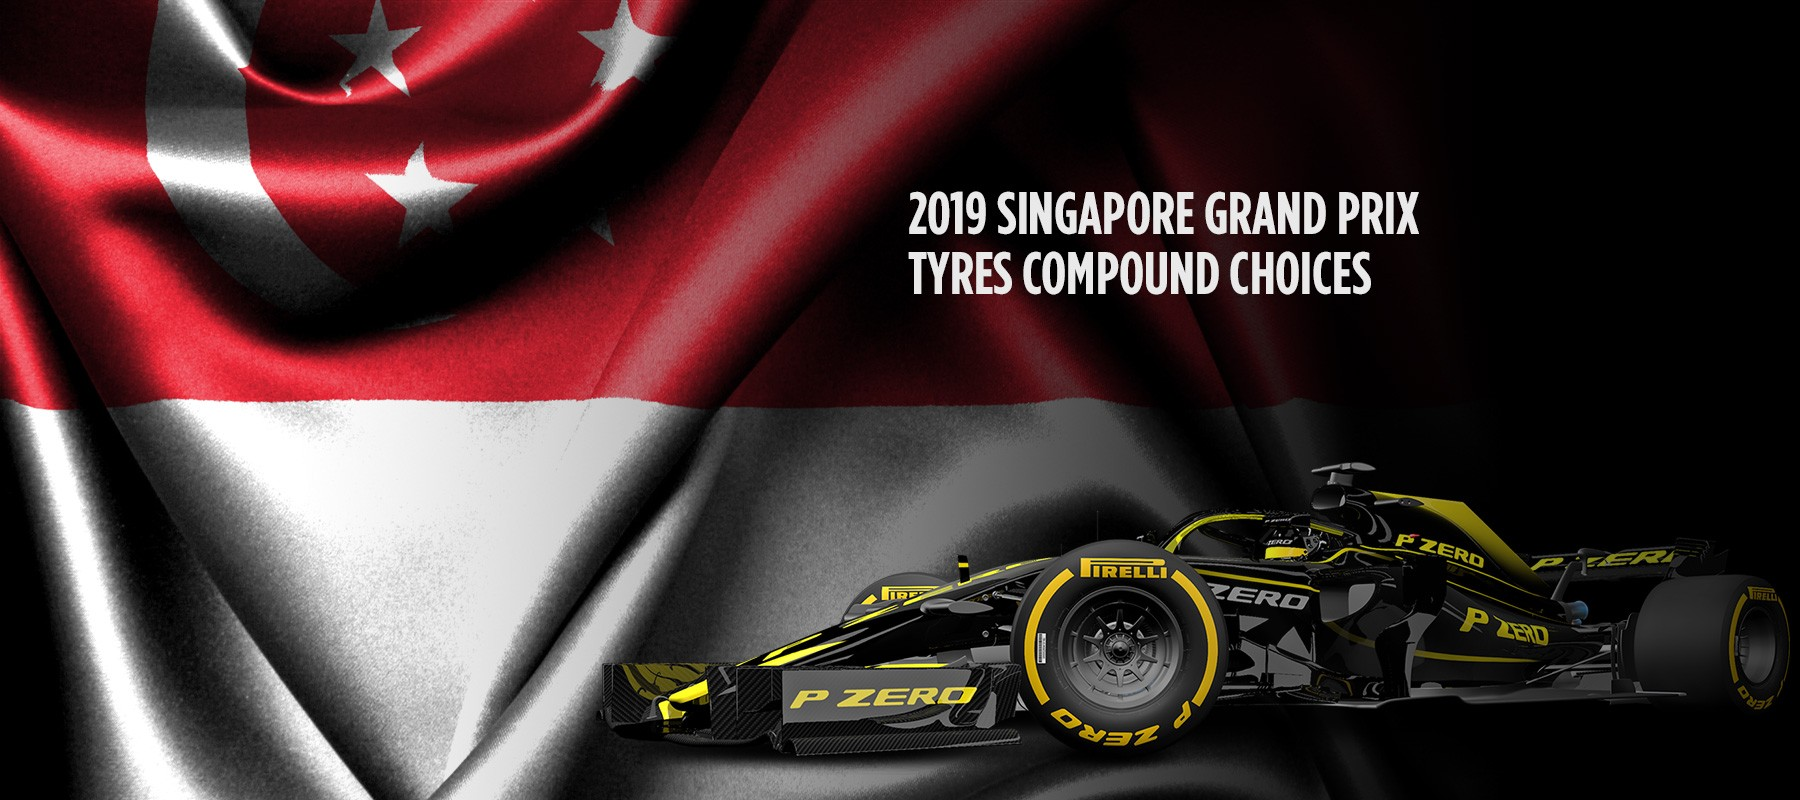 Pirelli is bringing the following compounds to the 2019 Singapore Grand Prix